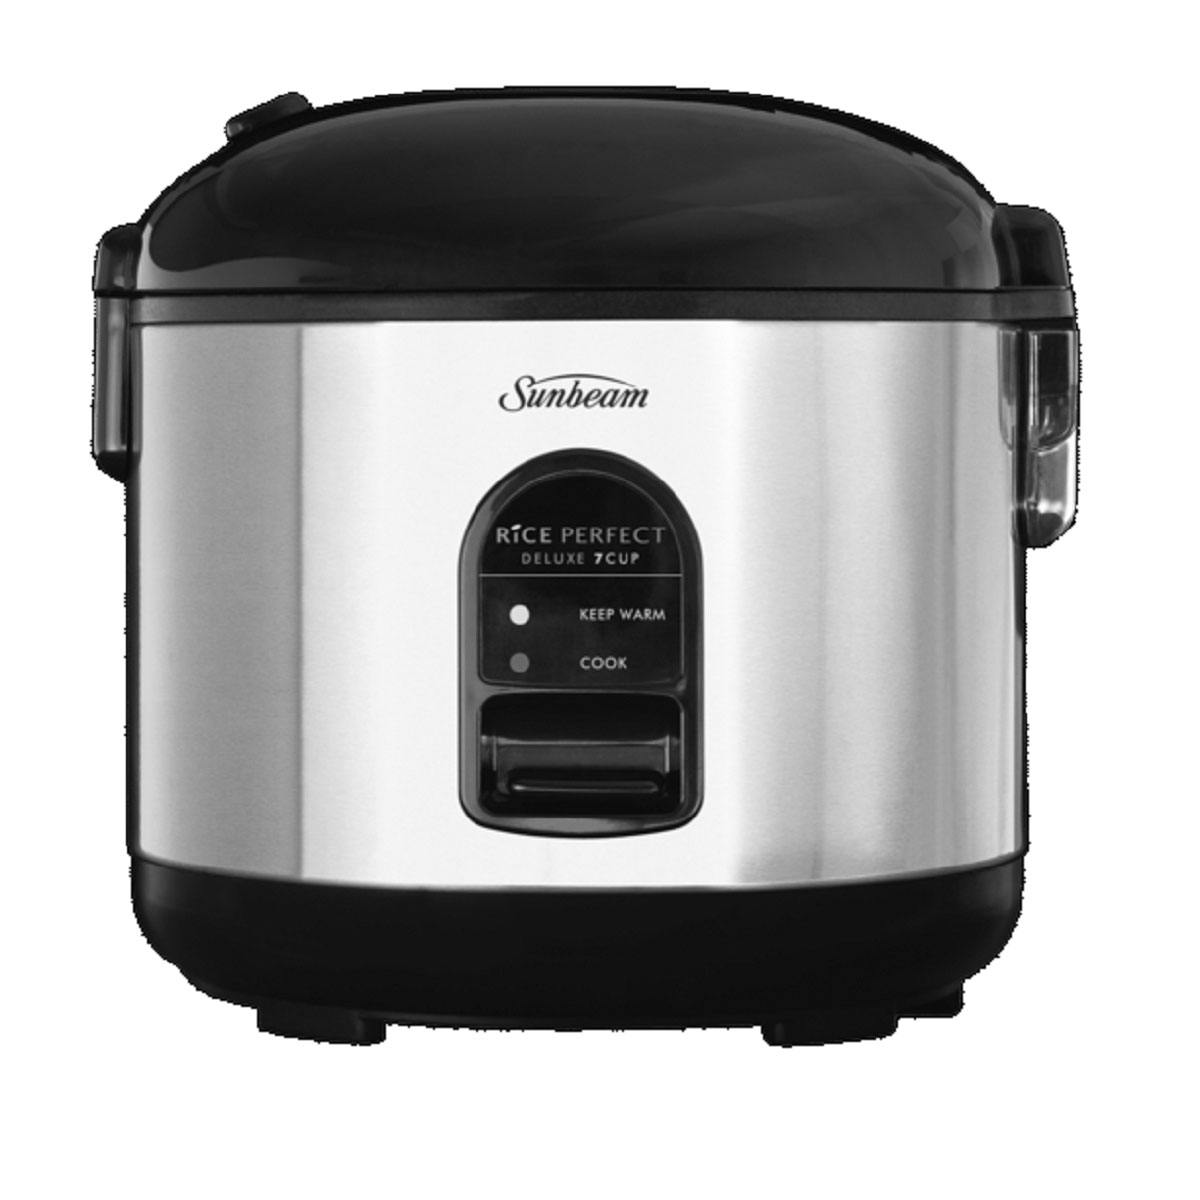 Sunbeam Rice Cooker RC5600